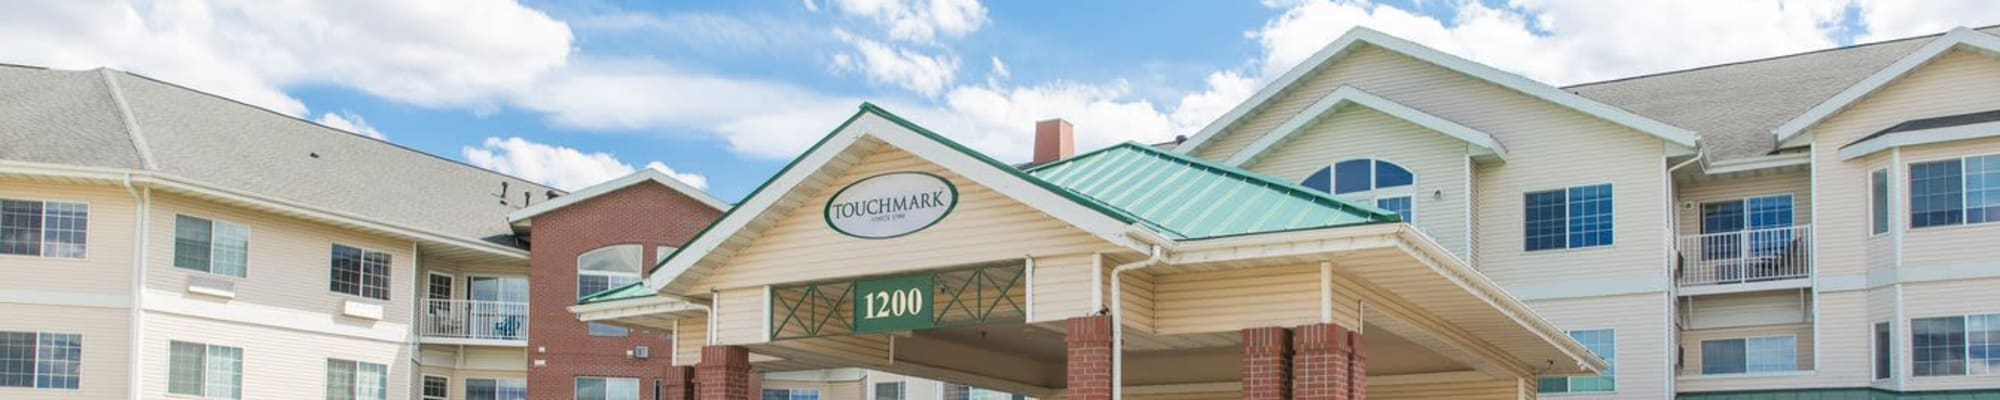 About Touchmark at Harwood Groves in Fargo, North Dakota